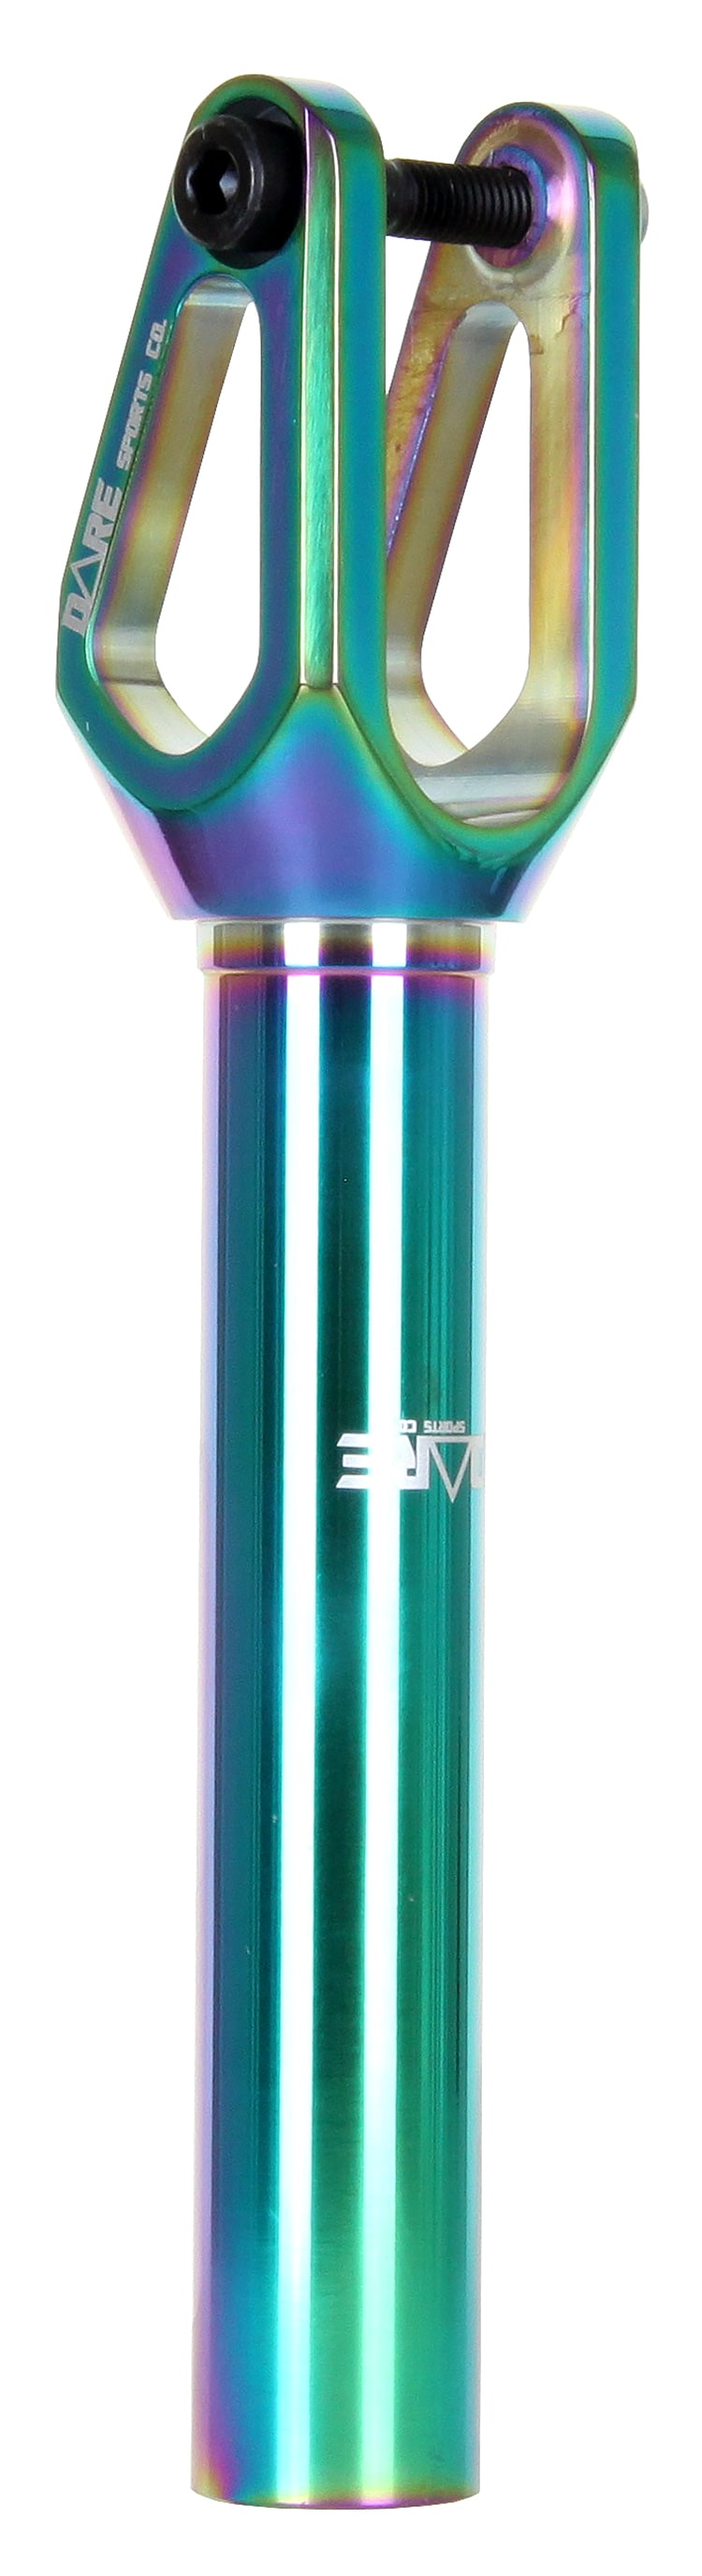 Image of Dare Dimension Scooter Forks - Neochrome 120mm